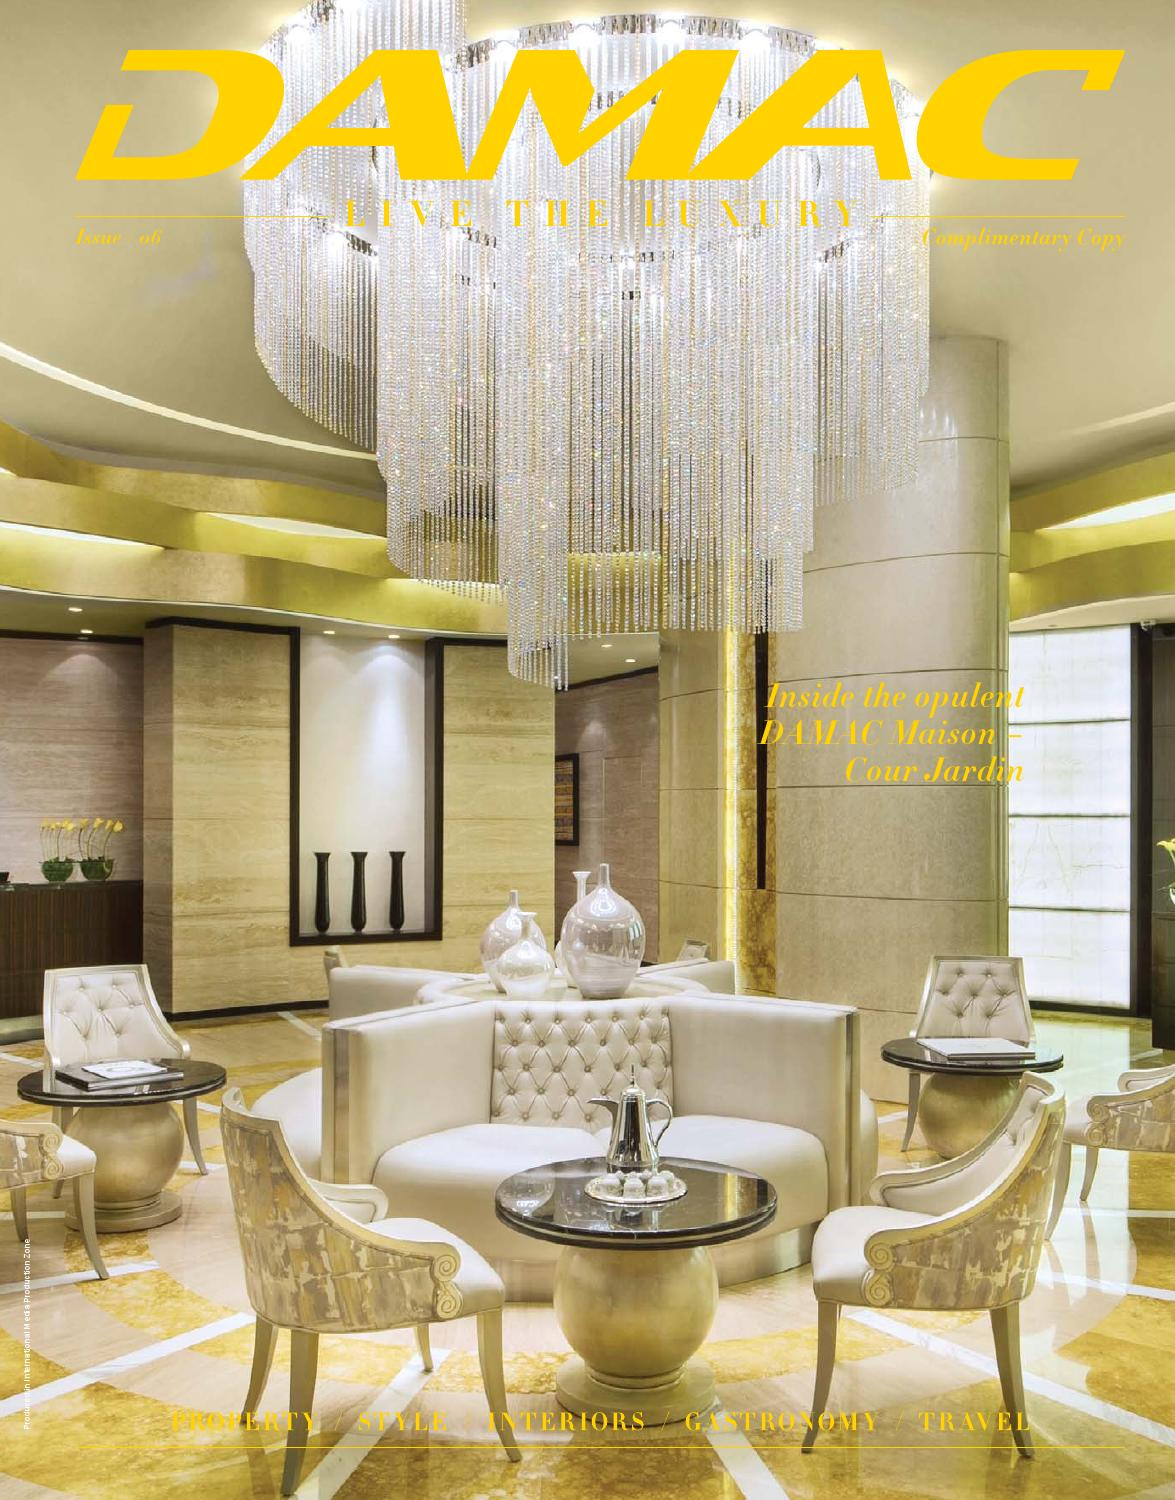 Salon Jardin Modulable Nouveau Damac Magazine issue 06 Apr 2015 by Damac Properties issuu Of 32 Beau Salon Jardin Modulable